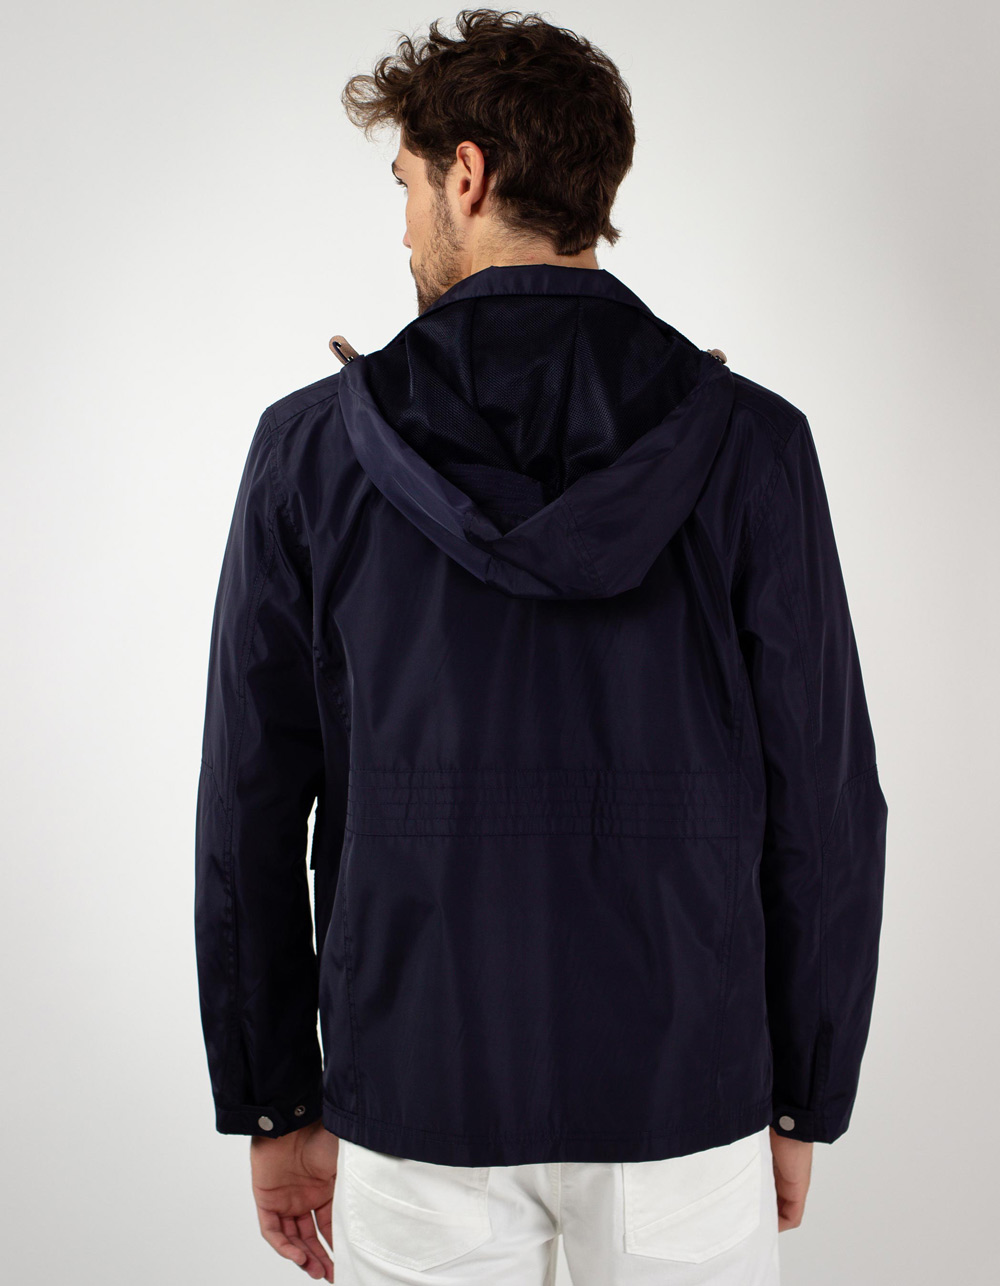 Navy sport parka - Backside